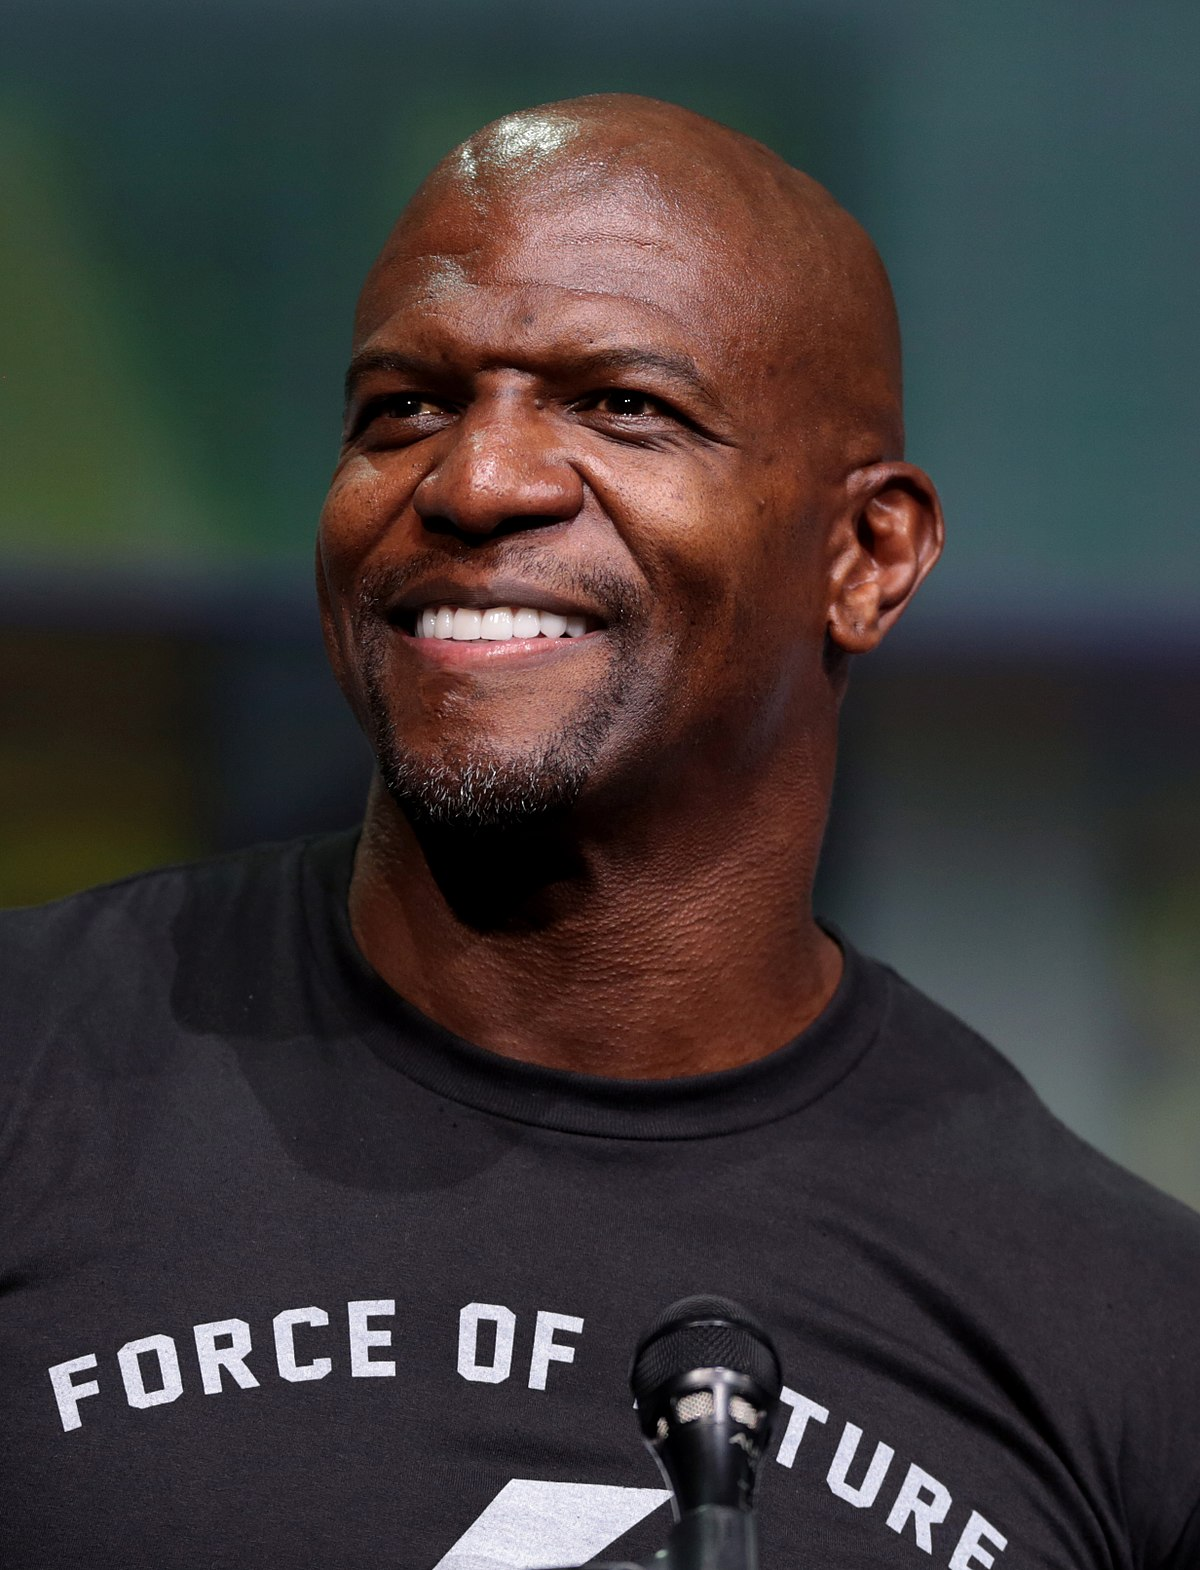 Terry Crews Wikipedia